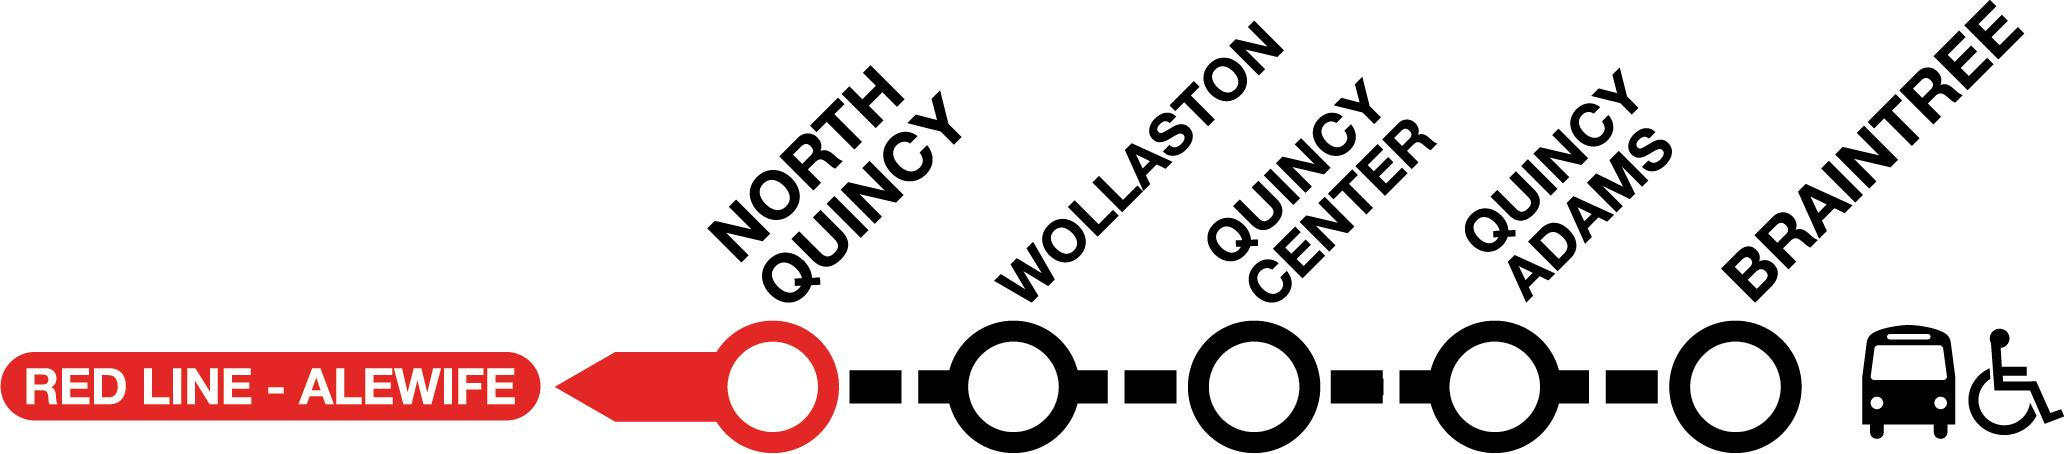 Red Line diagram showing a shuttle route from North Quincy to Braintree stations